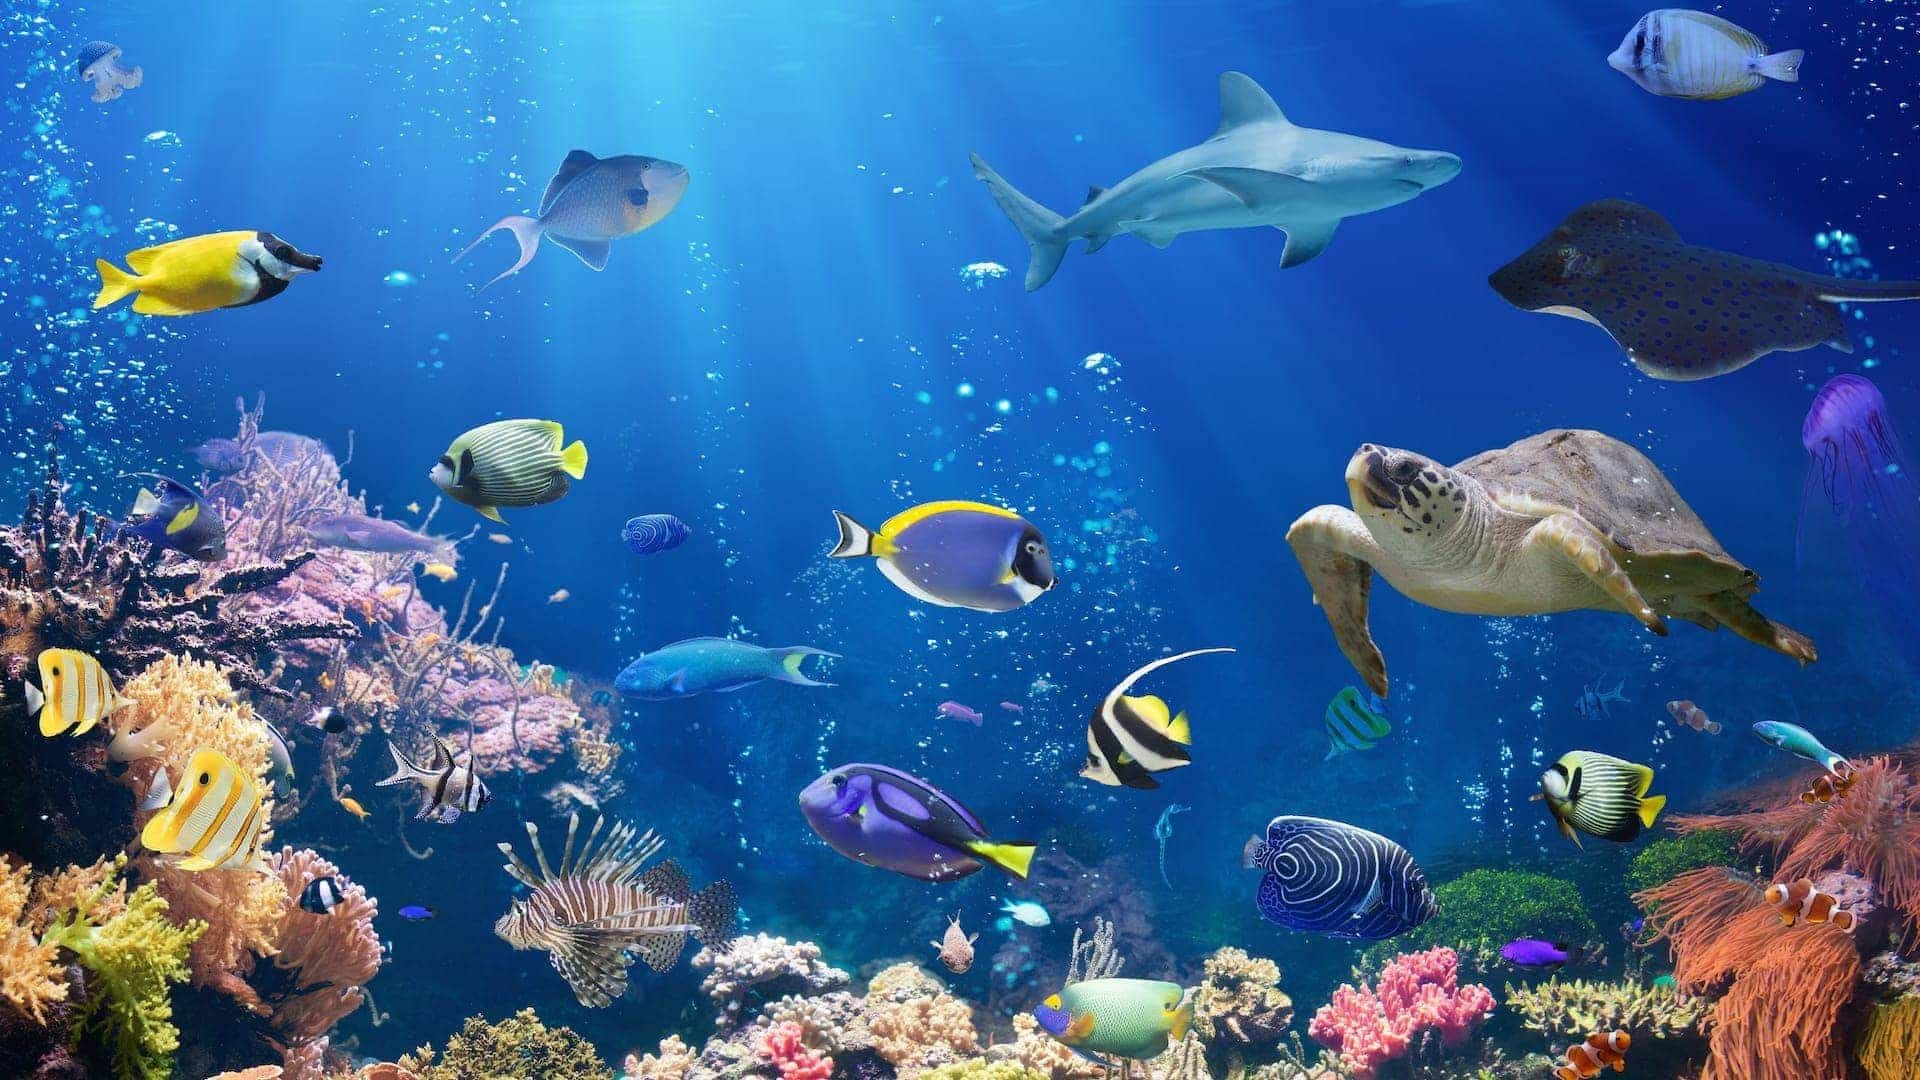 Supreme Wallpaper Iphone 5 Great Barrier Reef Wallpaper 61 Images